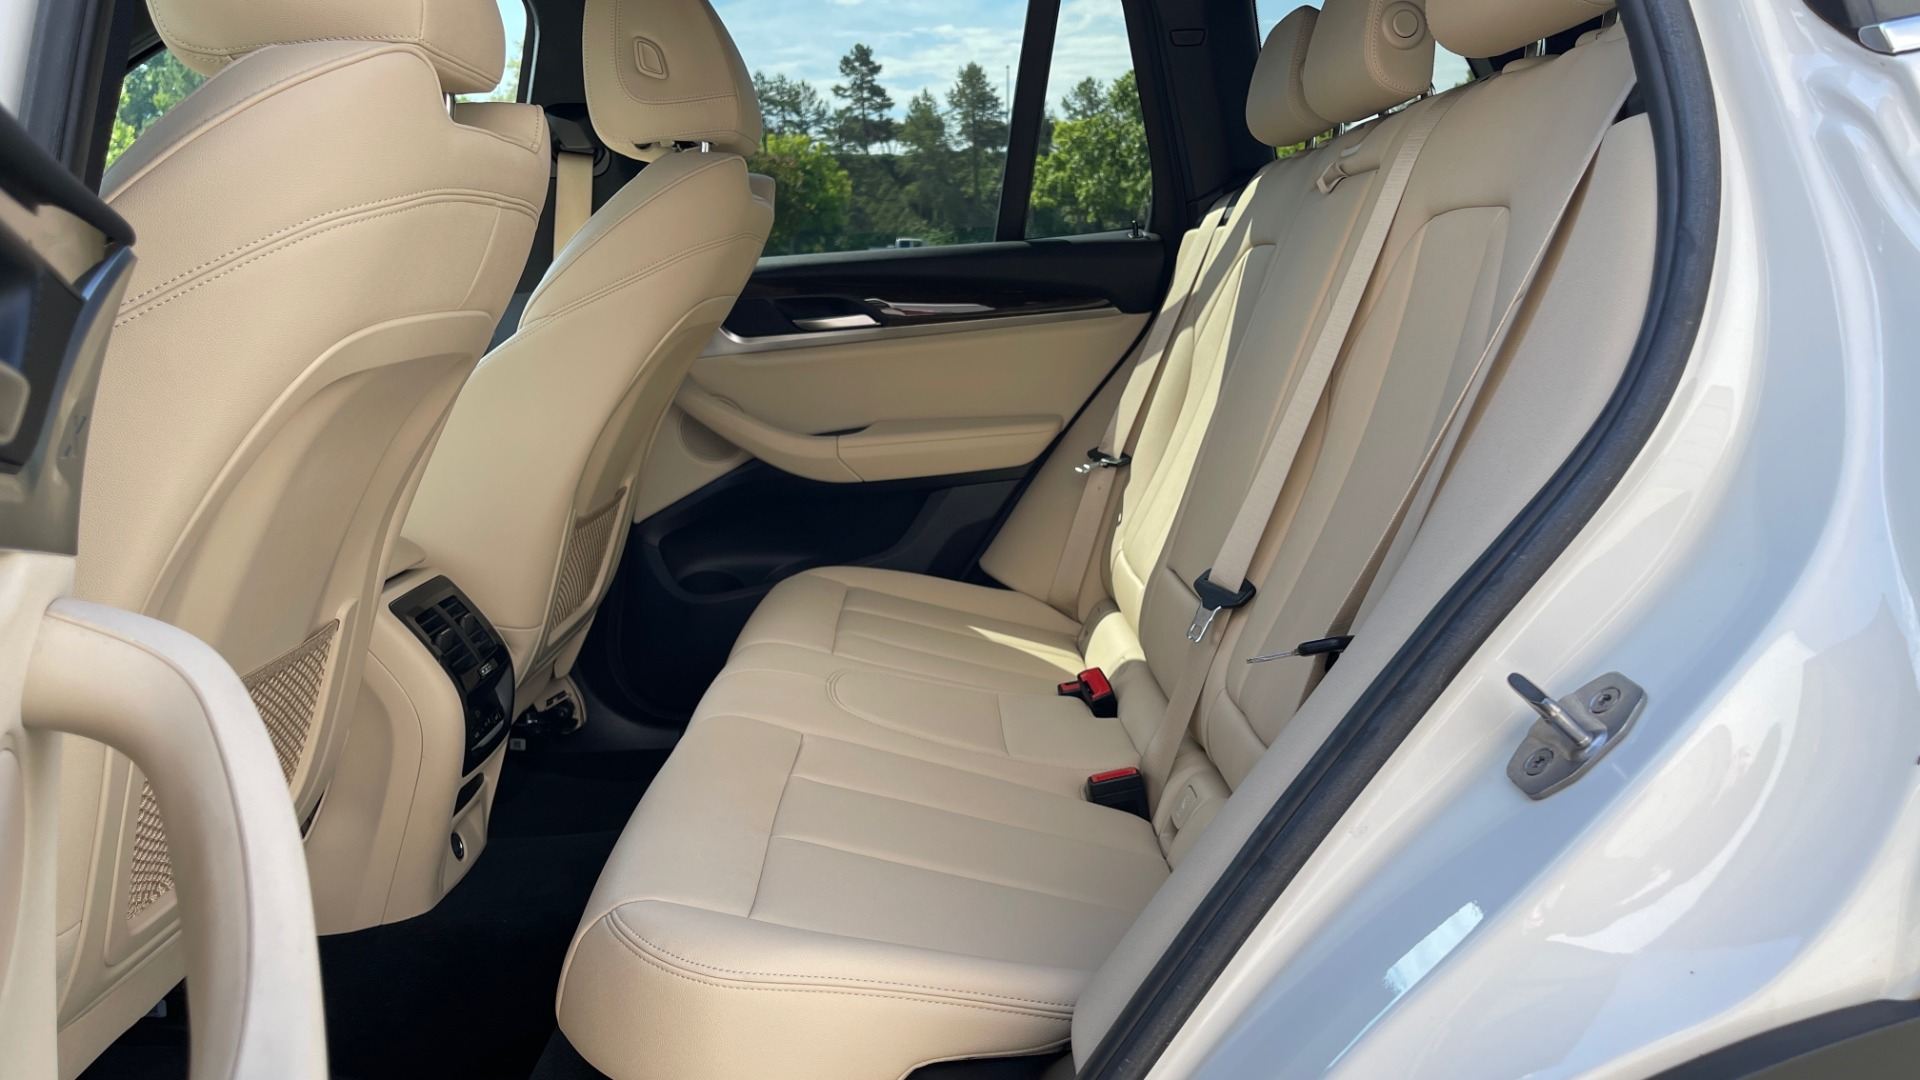 Used 2018 BMW X3 XDRIVE30I CONVENIENCE PKG / HEATED FRONT SEATS / REARVIEW for sale $36,595 at Formula Imports in Charlotte NC 28227 52